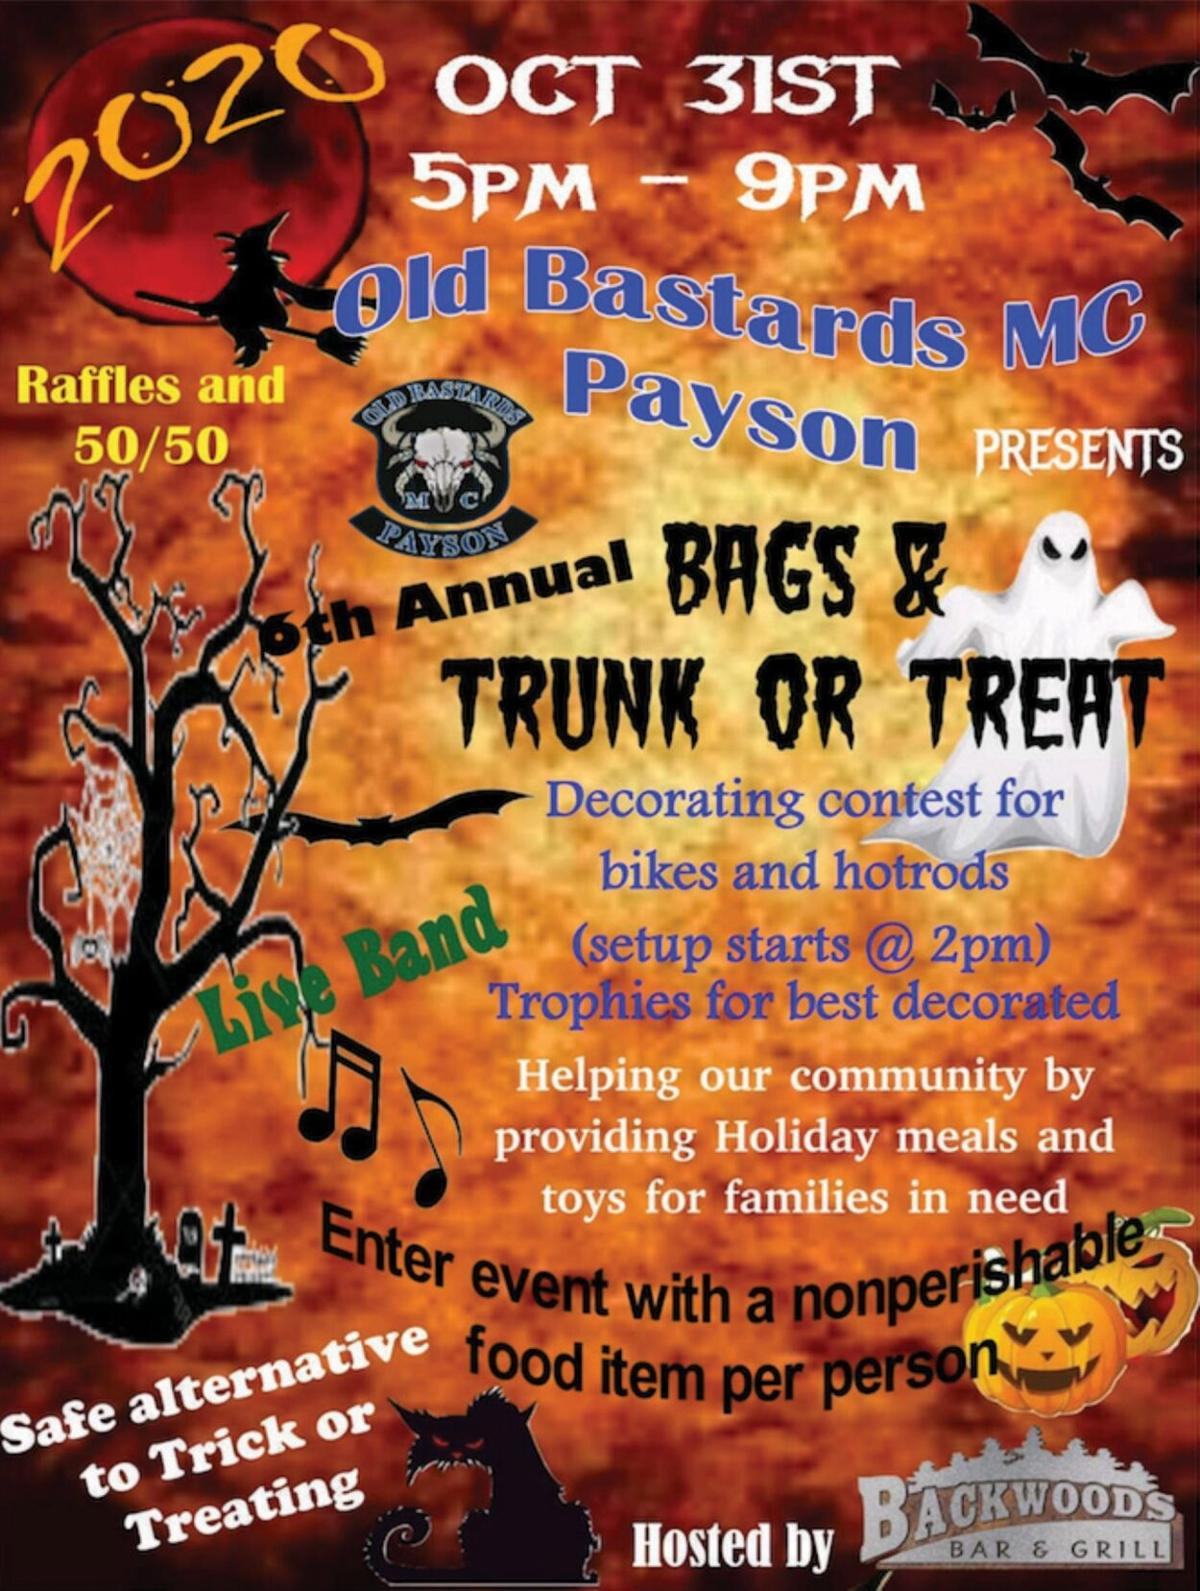 OBMC Bags & Trunk or Treat